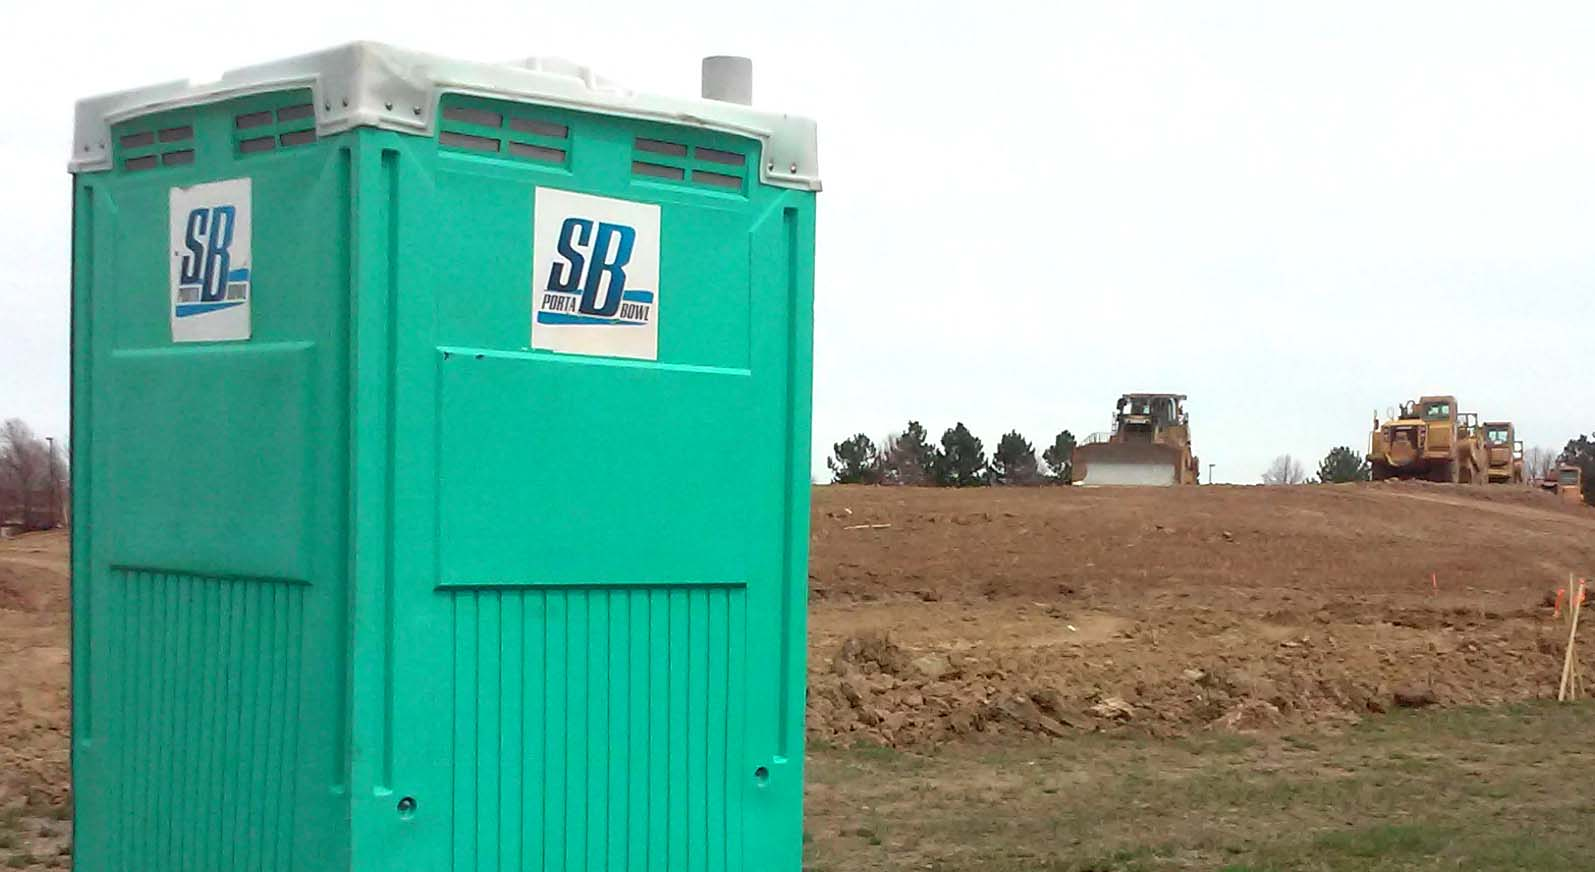 S b porta bowl offers portable restrooms and porta potty for Portable bathrooms for rent